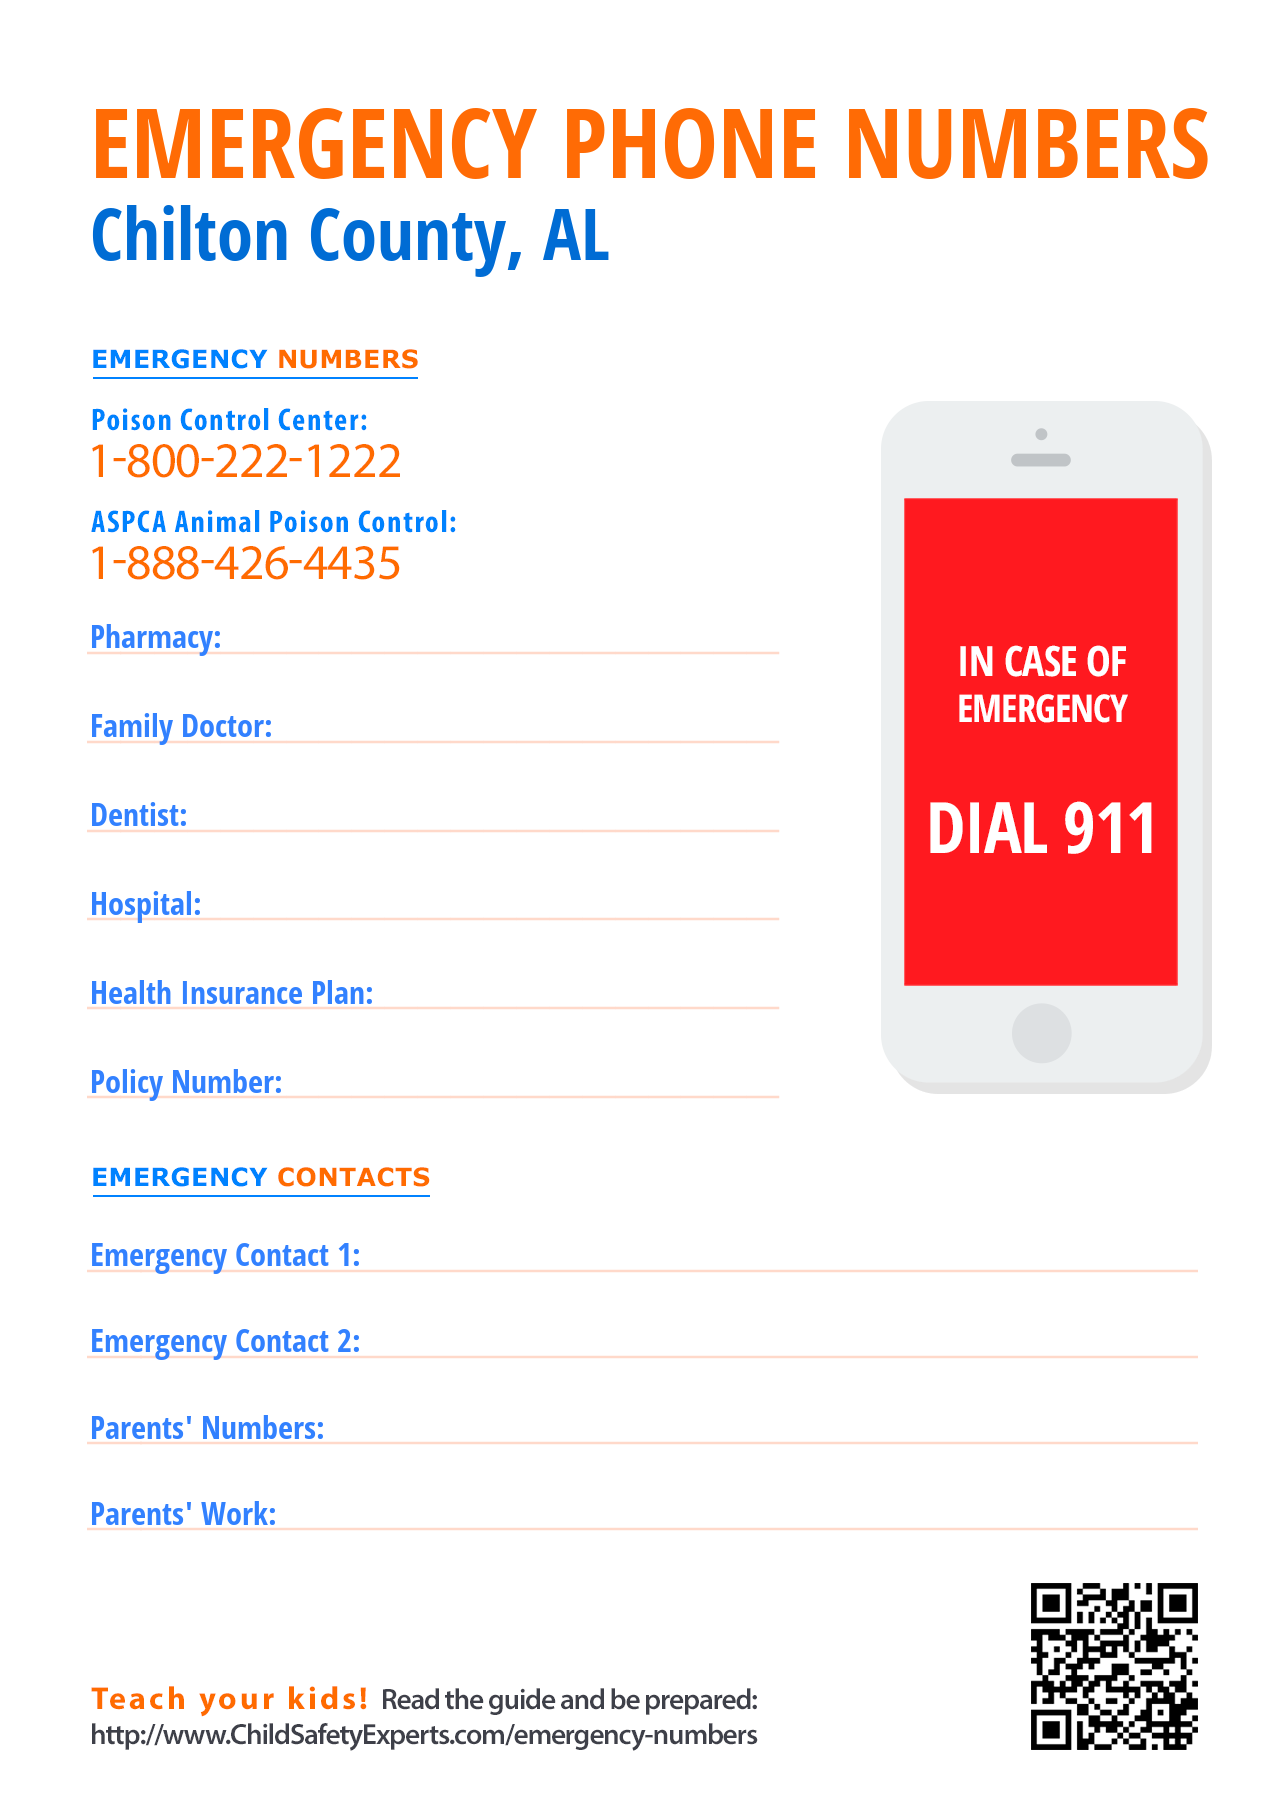 Important emergency phone numbers in Chilton County, Alabama